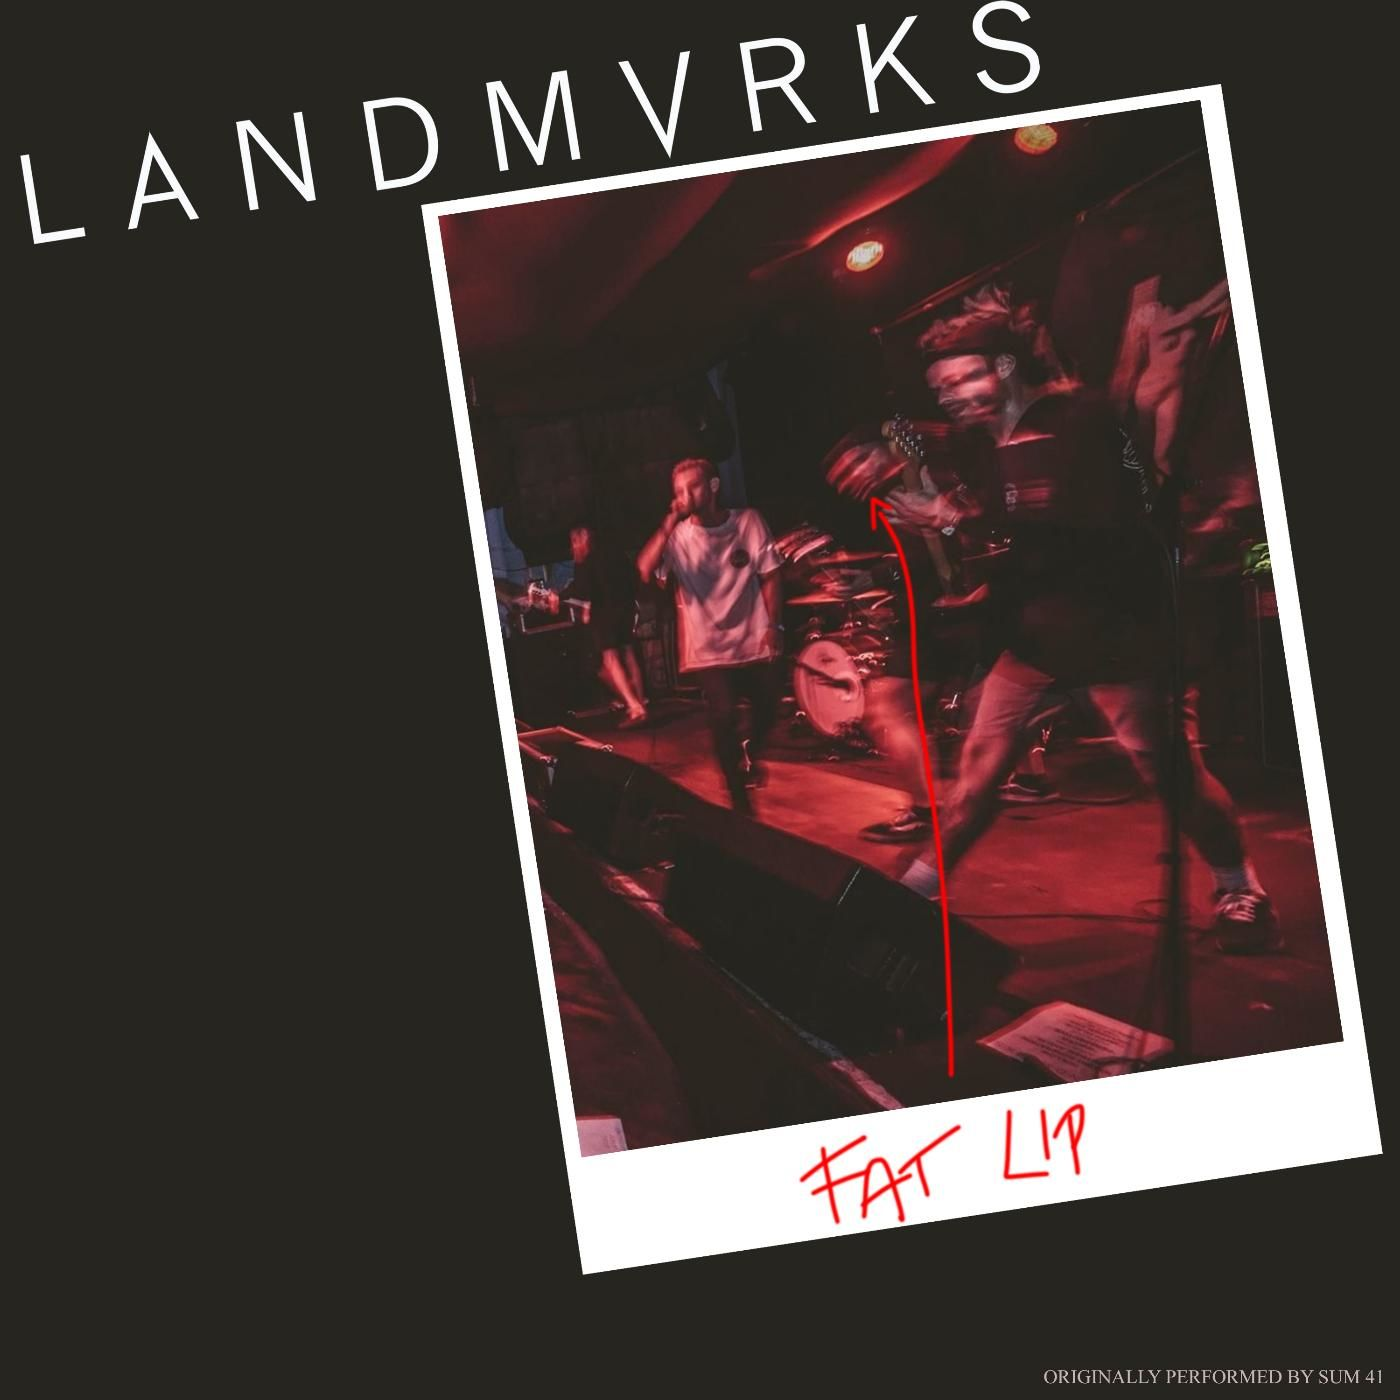 LANDMVRKS - Fat Lip [single] (2017)